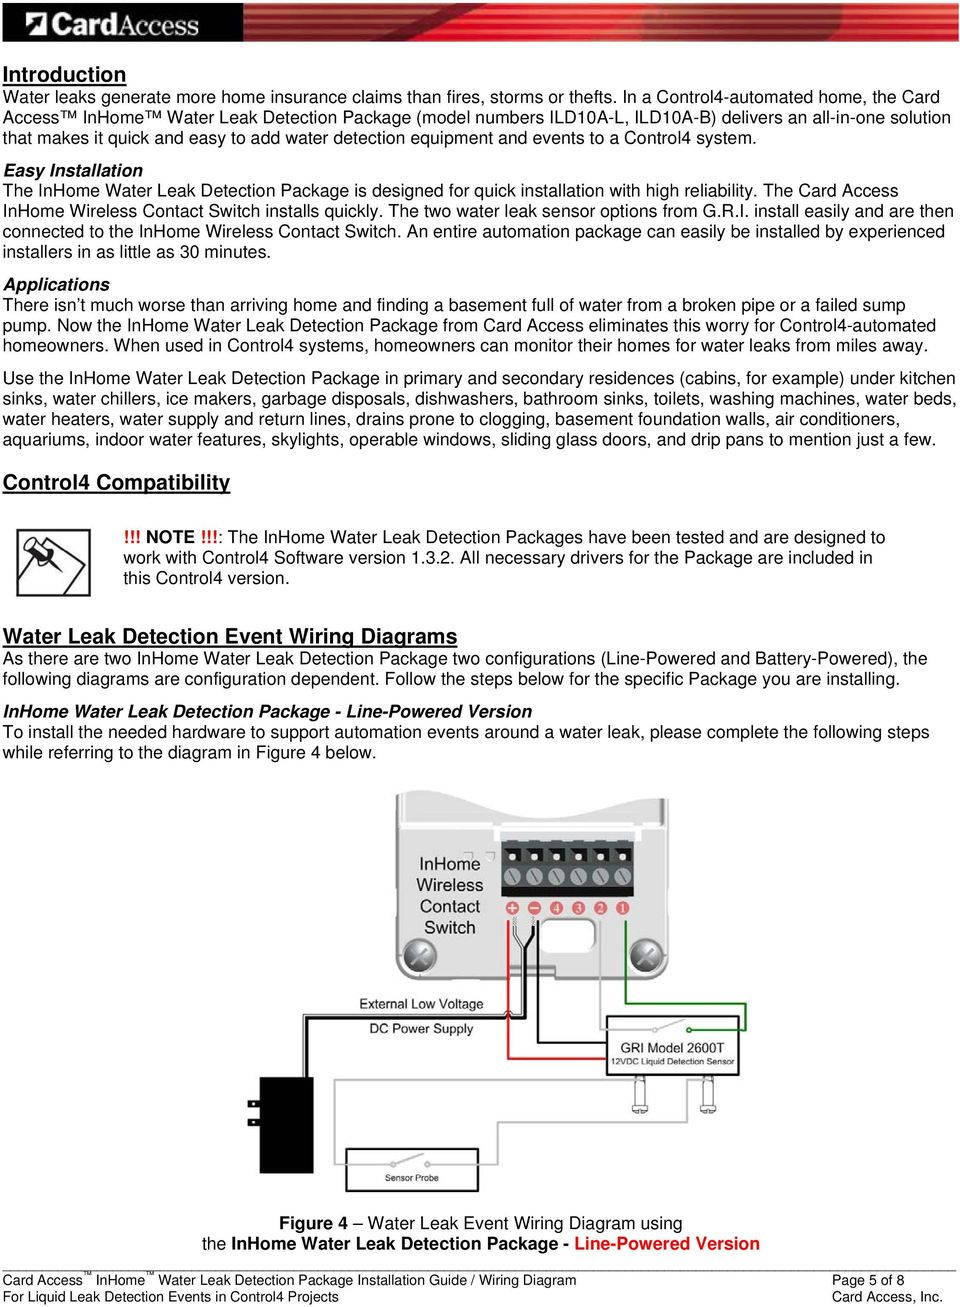 event wiring diagram inhome water leak detection package pdf free download  inhome water leak detection package